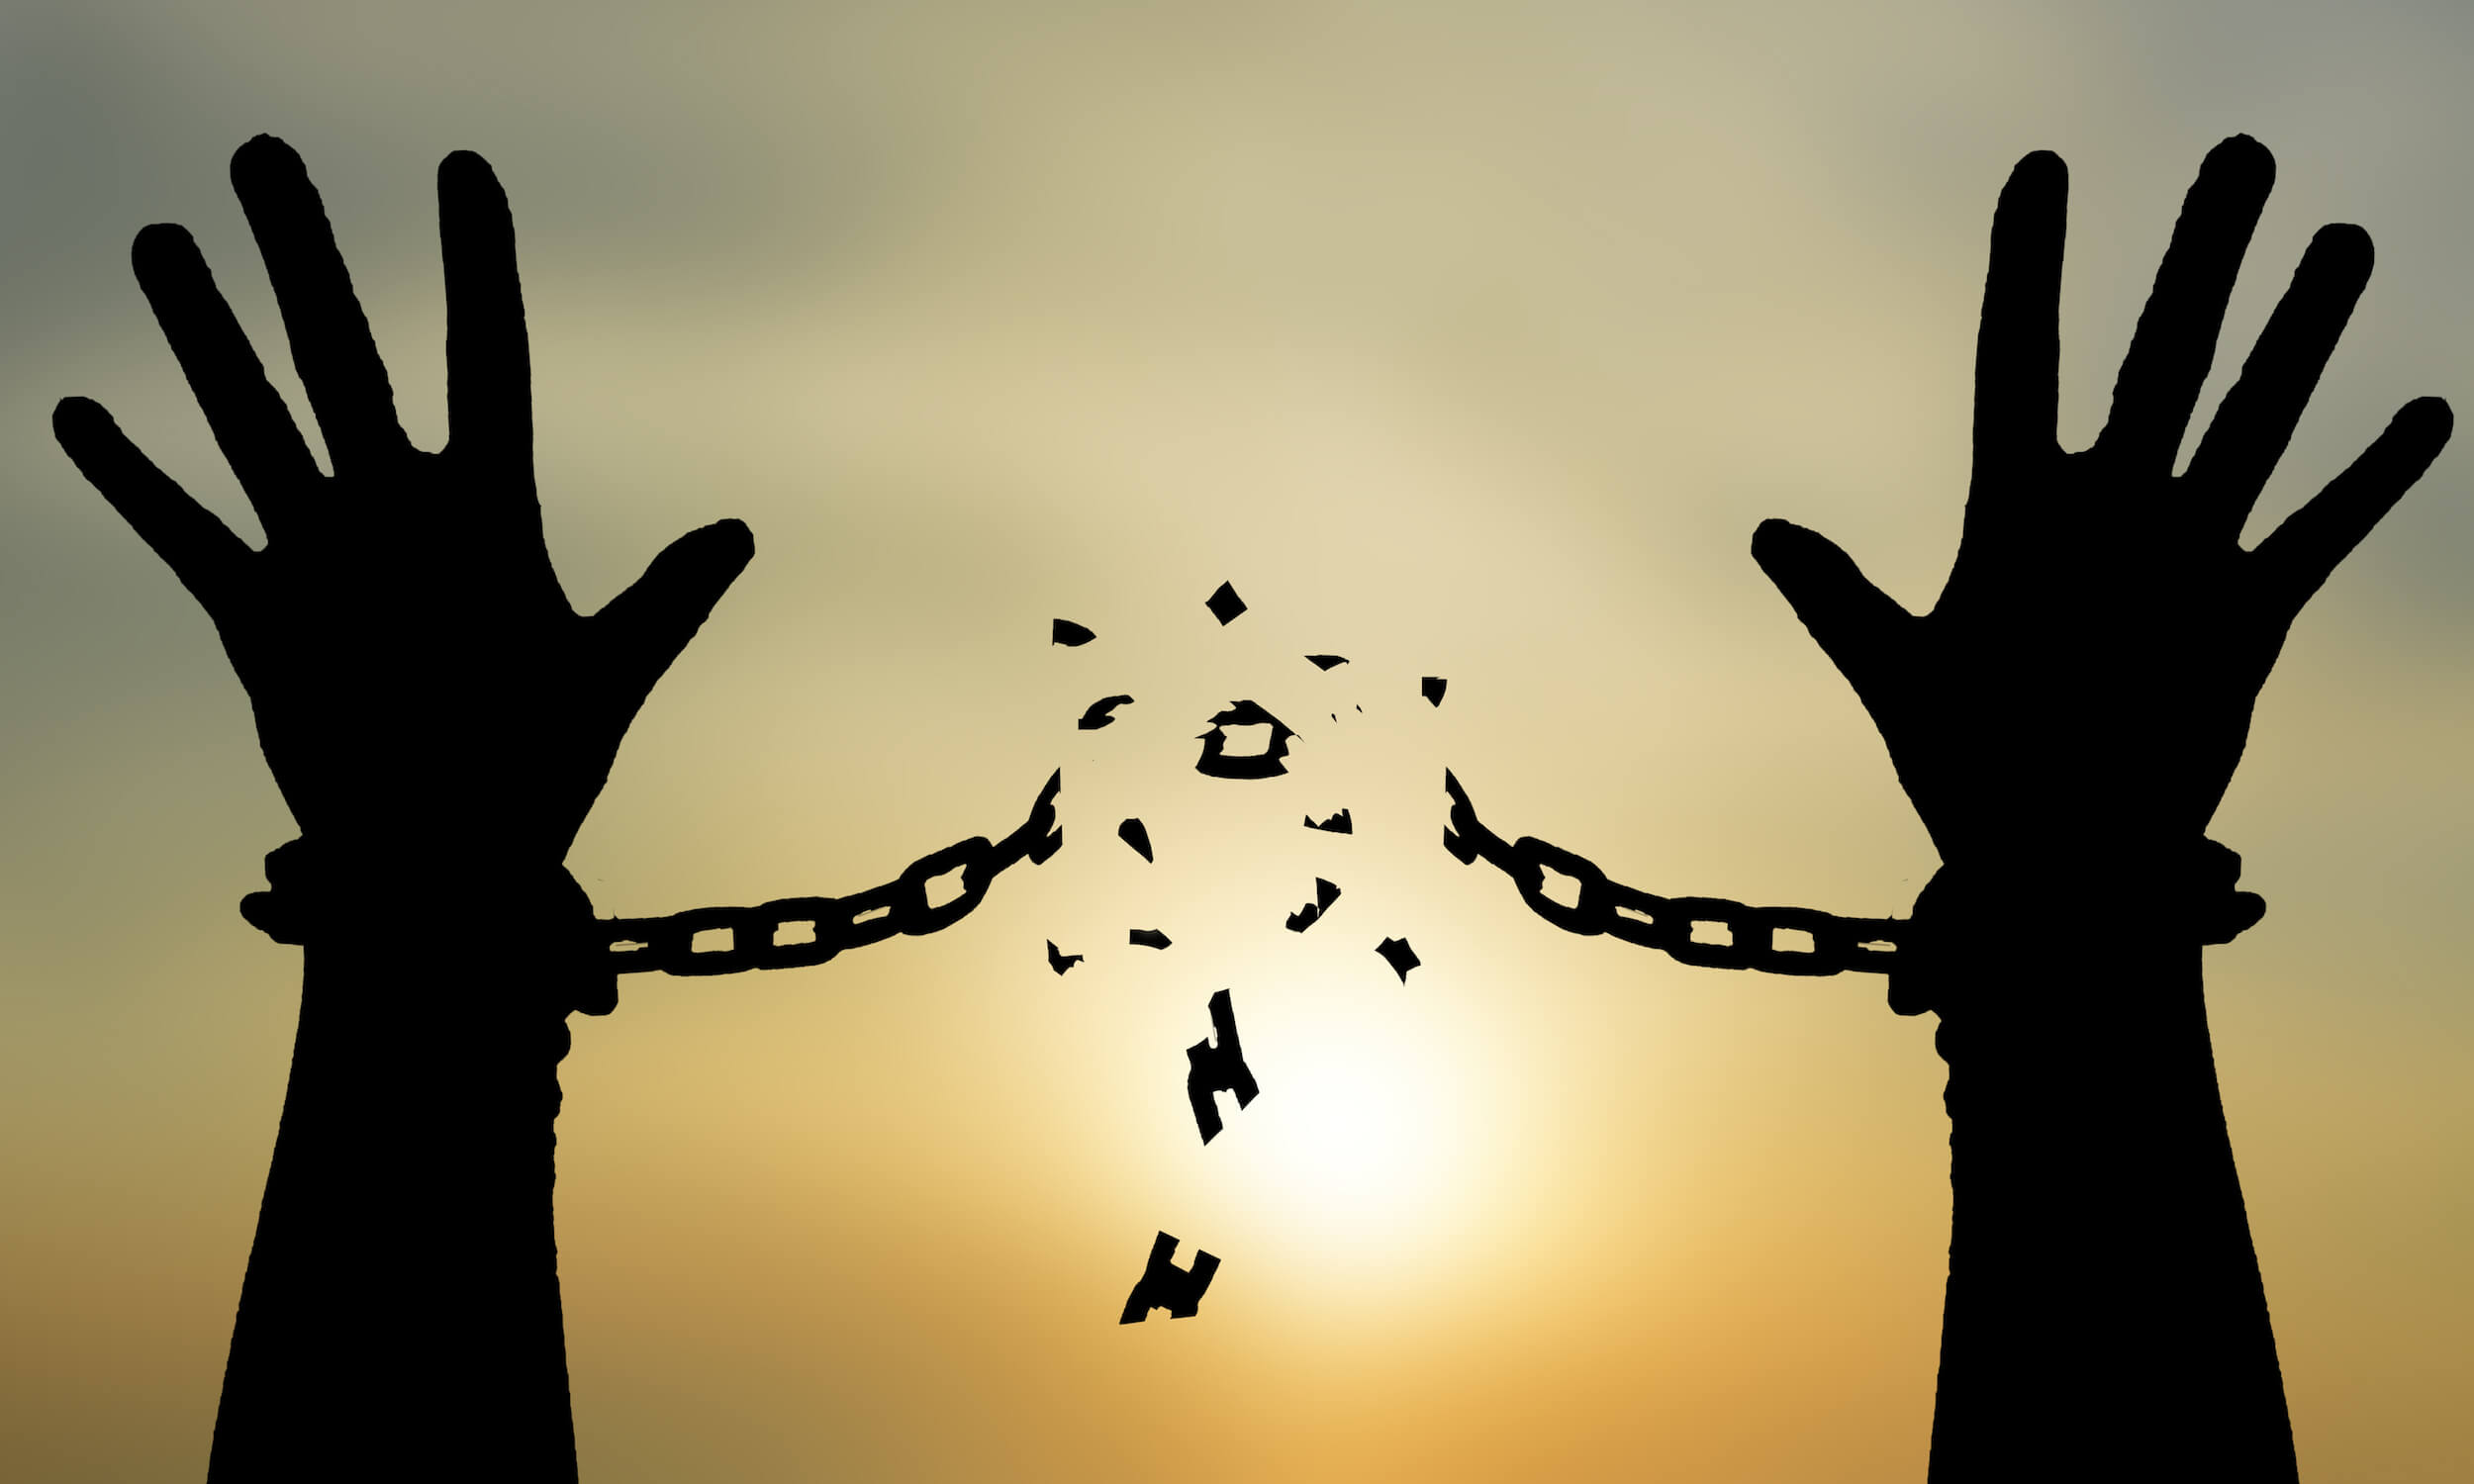 Silhouette of human hands breaking out of chains